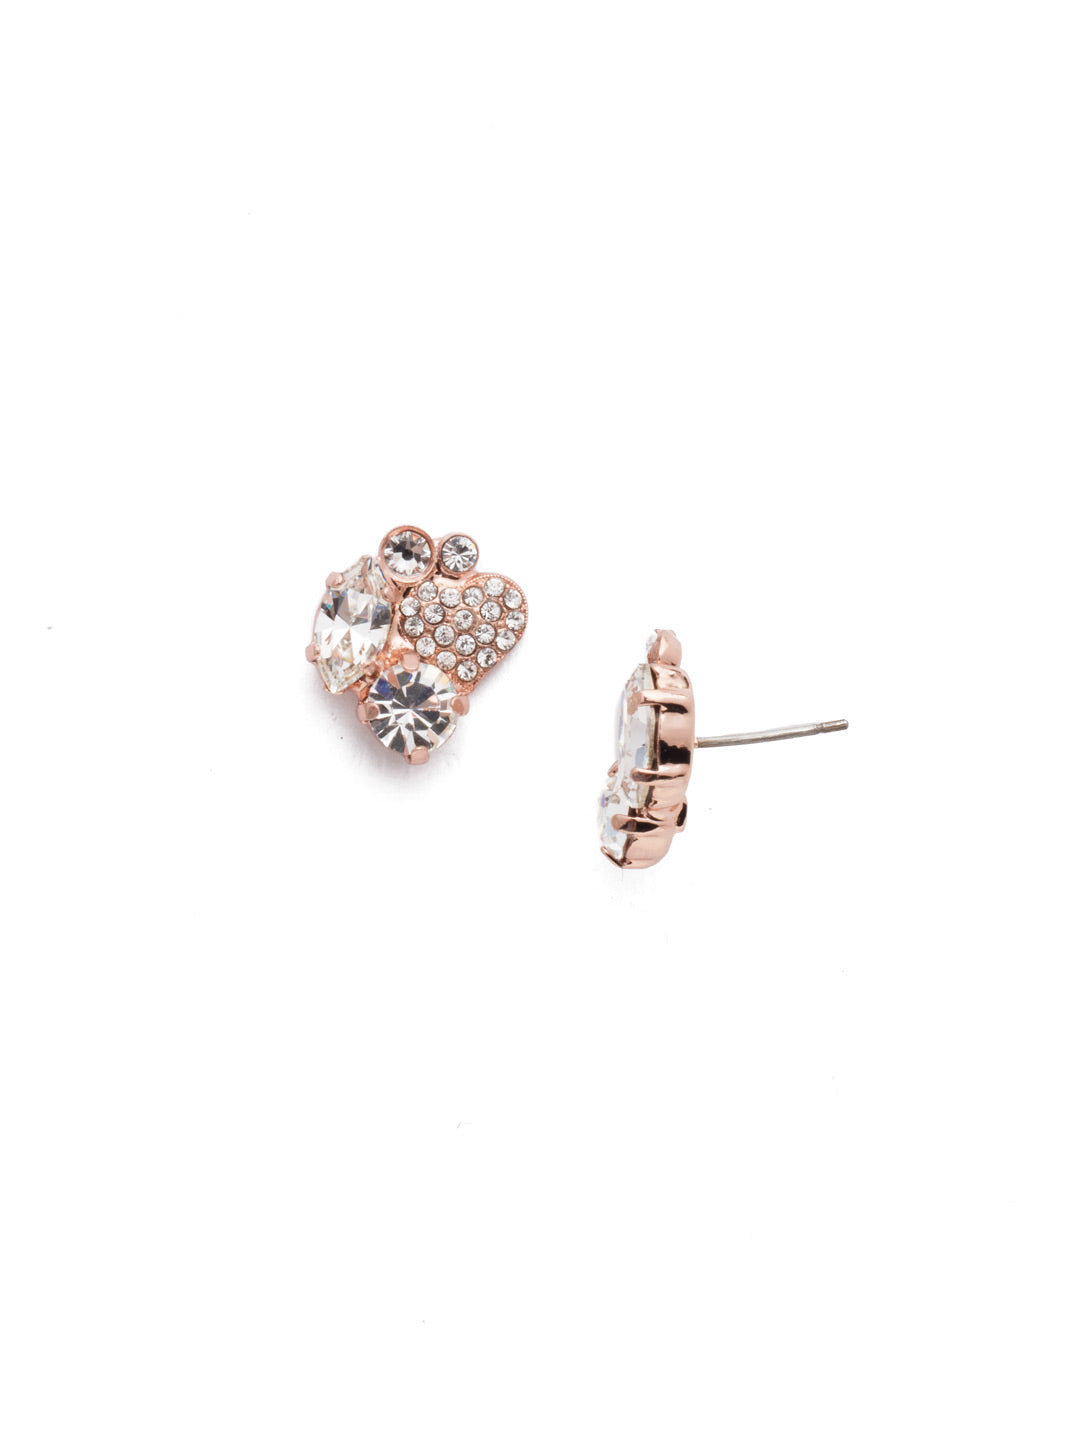 Lilo Stud Earrings - EER9RGCRY